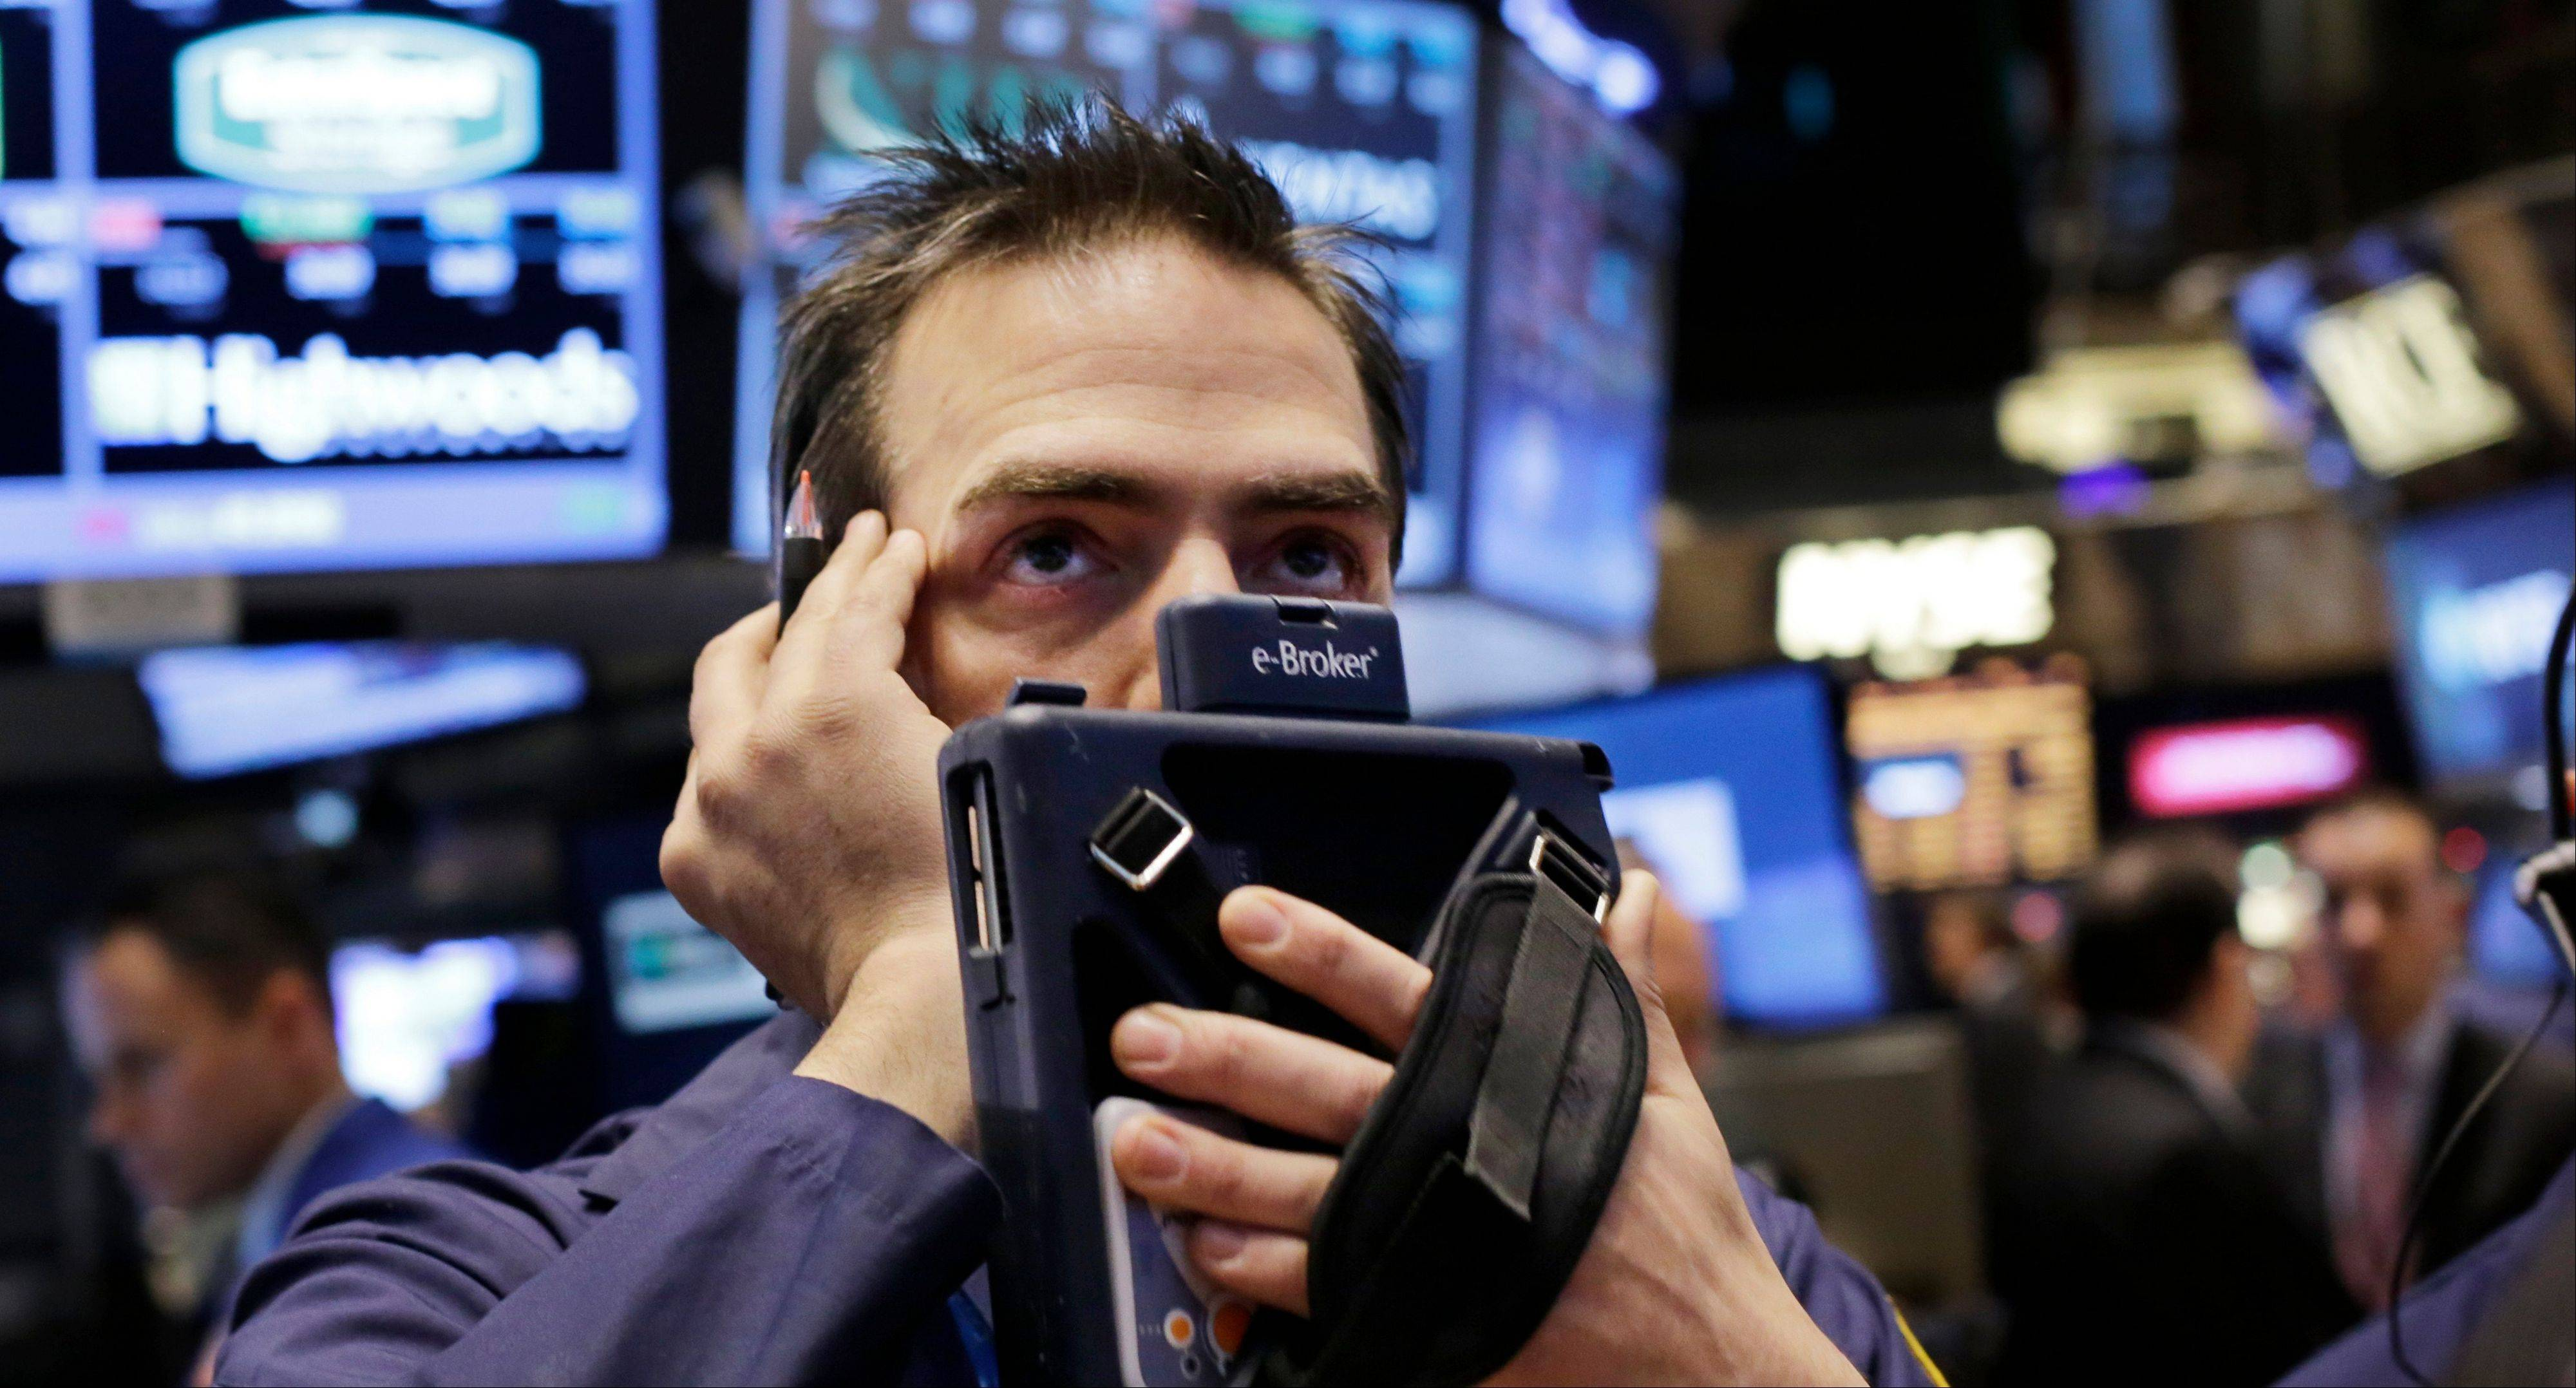 U.S. stocks fell for a third day Monday, the longest stretch of declines to start a year for the Standard & Poor�s 500 Index since 2005, after slower-than-forecast growth in service industries.